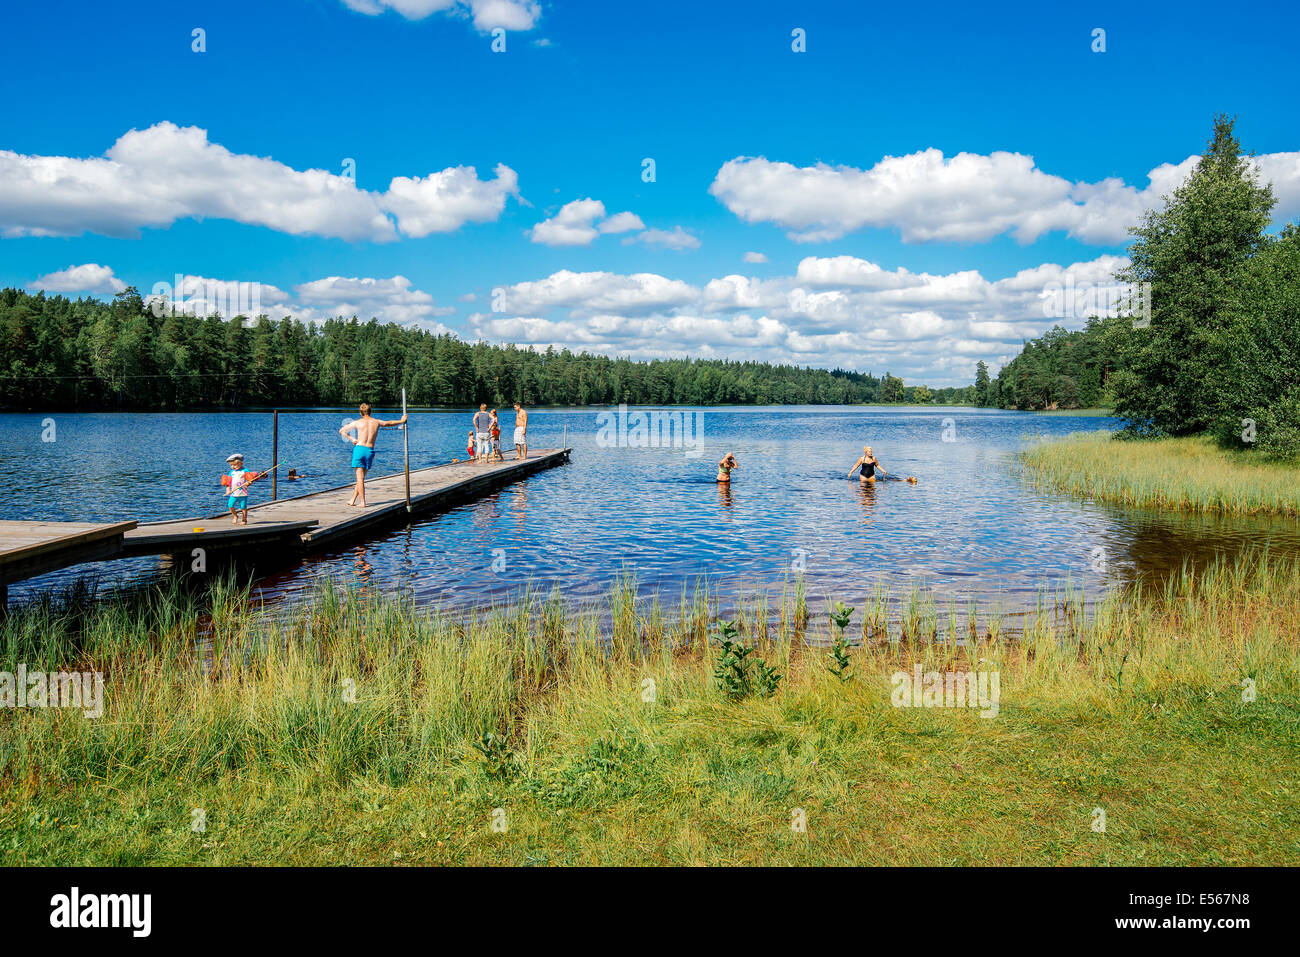 Summer in Sweden - people enjoying a sunny day by a lake - Stock Image